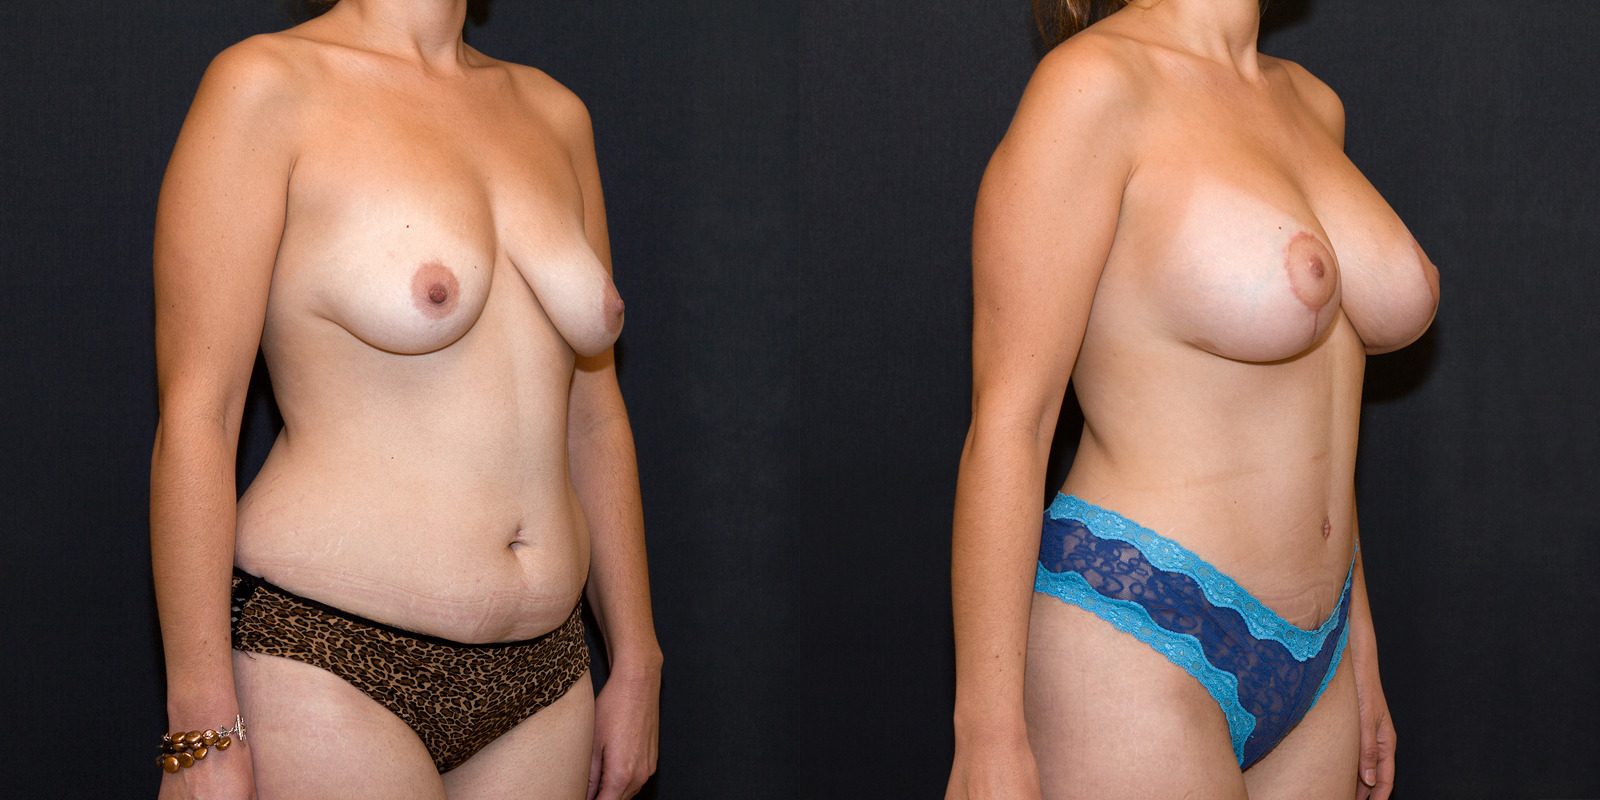 Breast enlargements before and after pictures